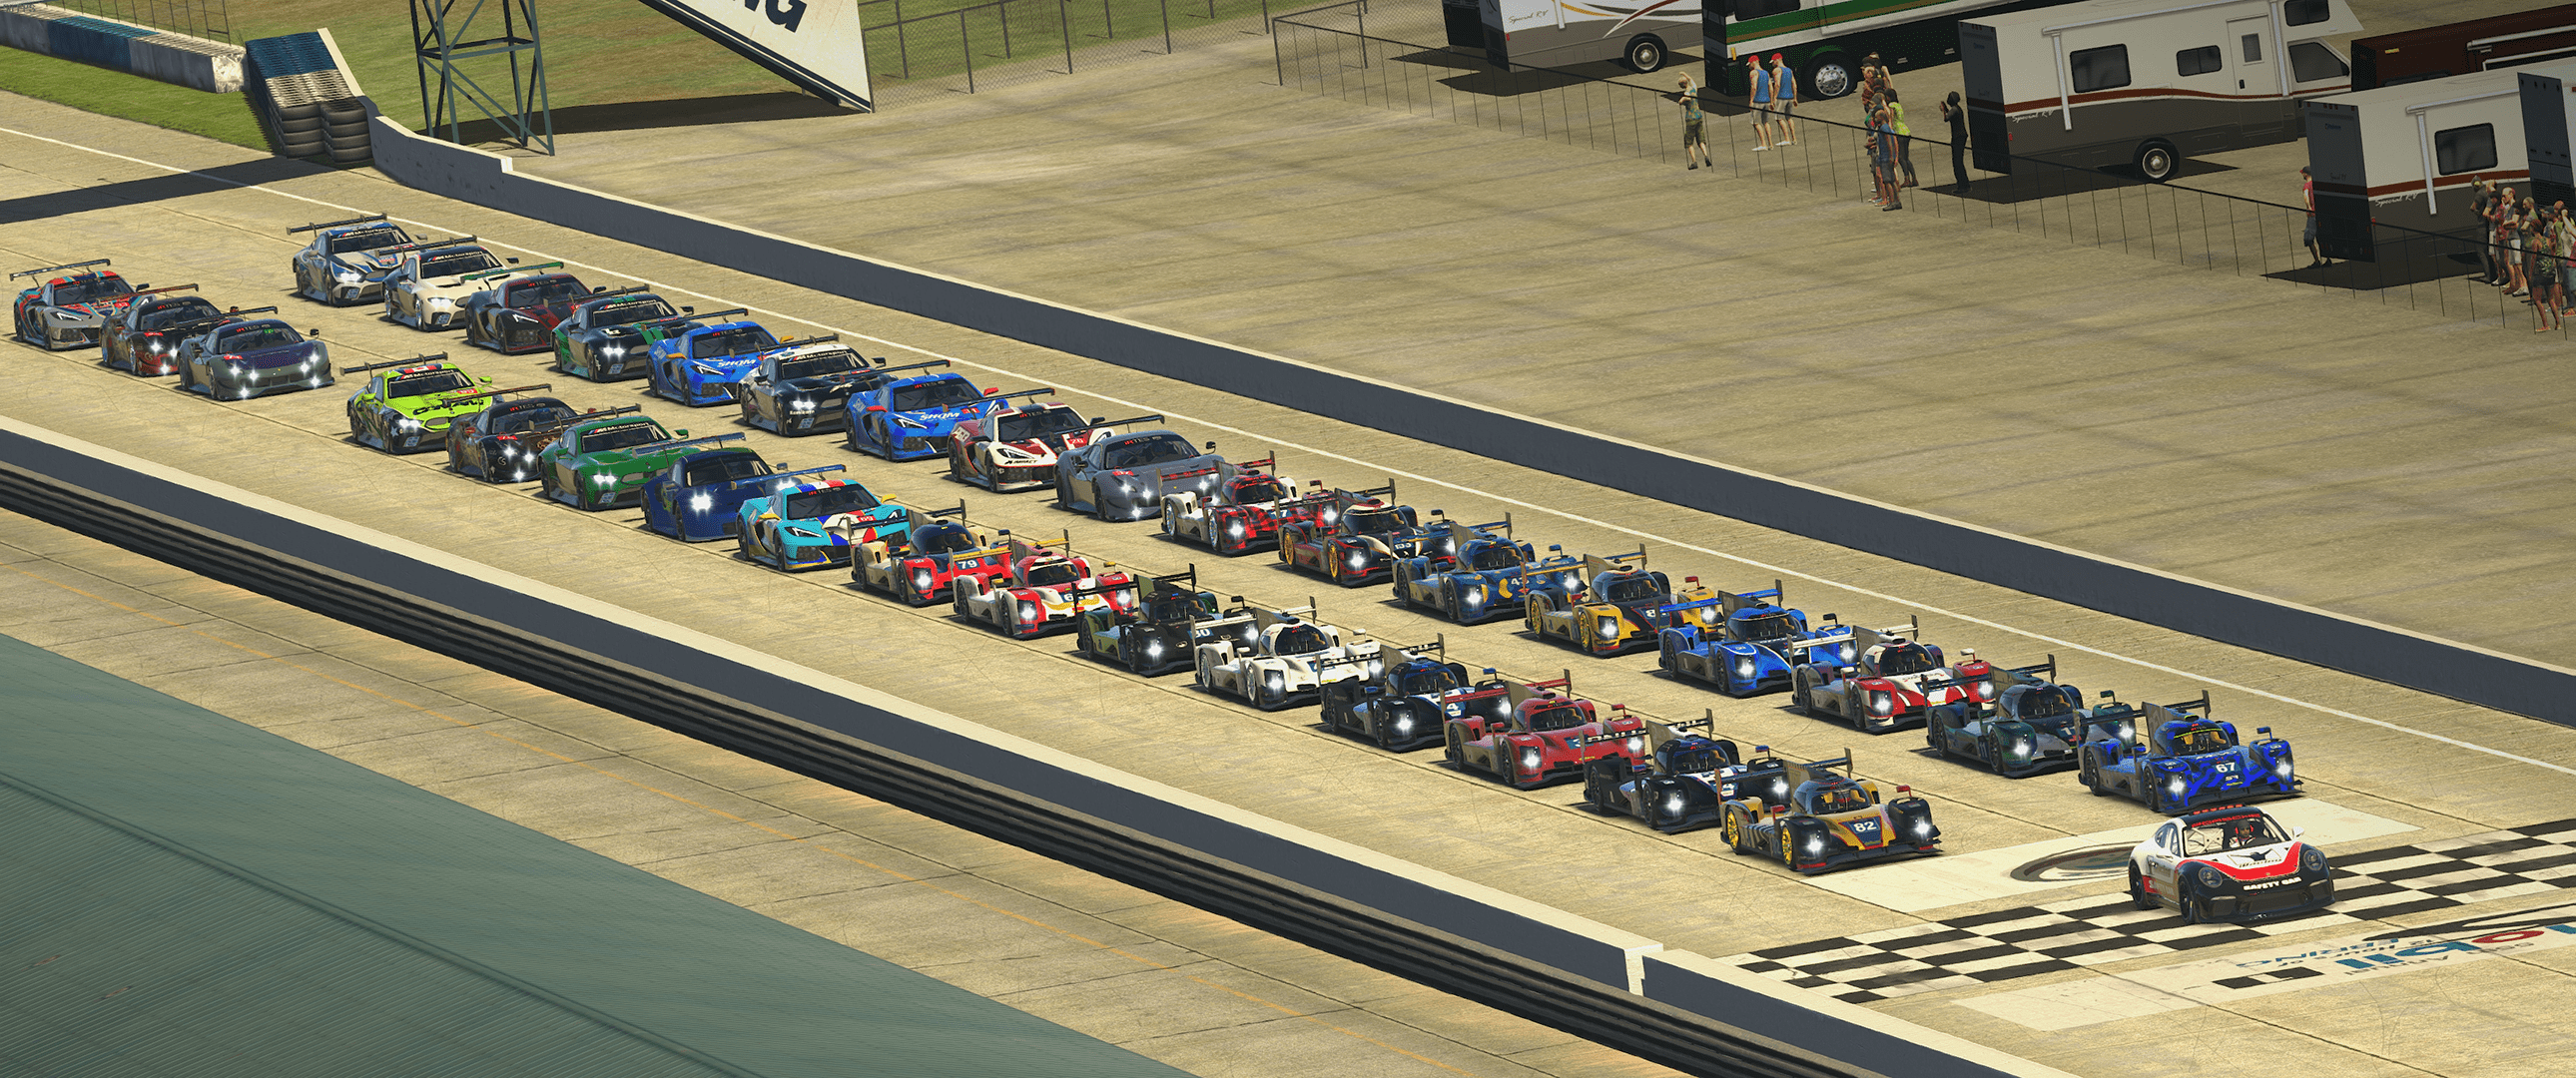 The iRTES starting grid at Sebring.